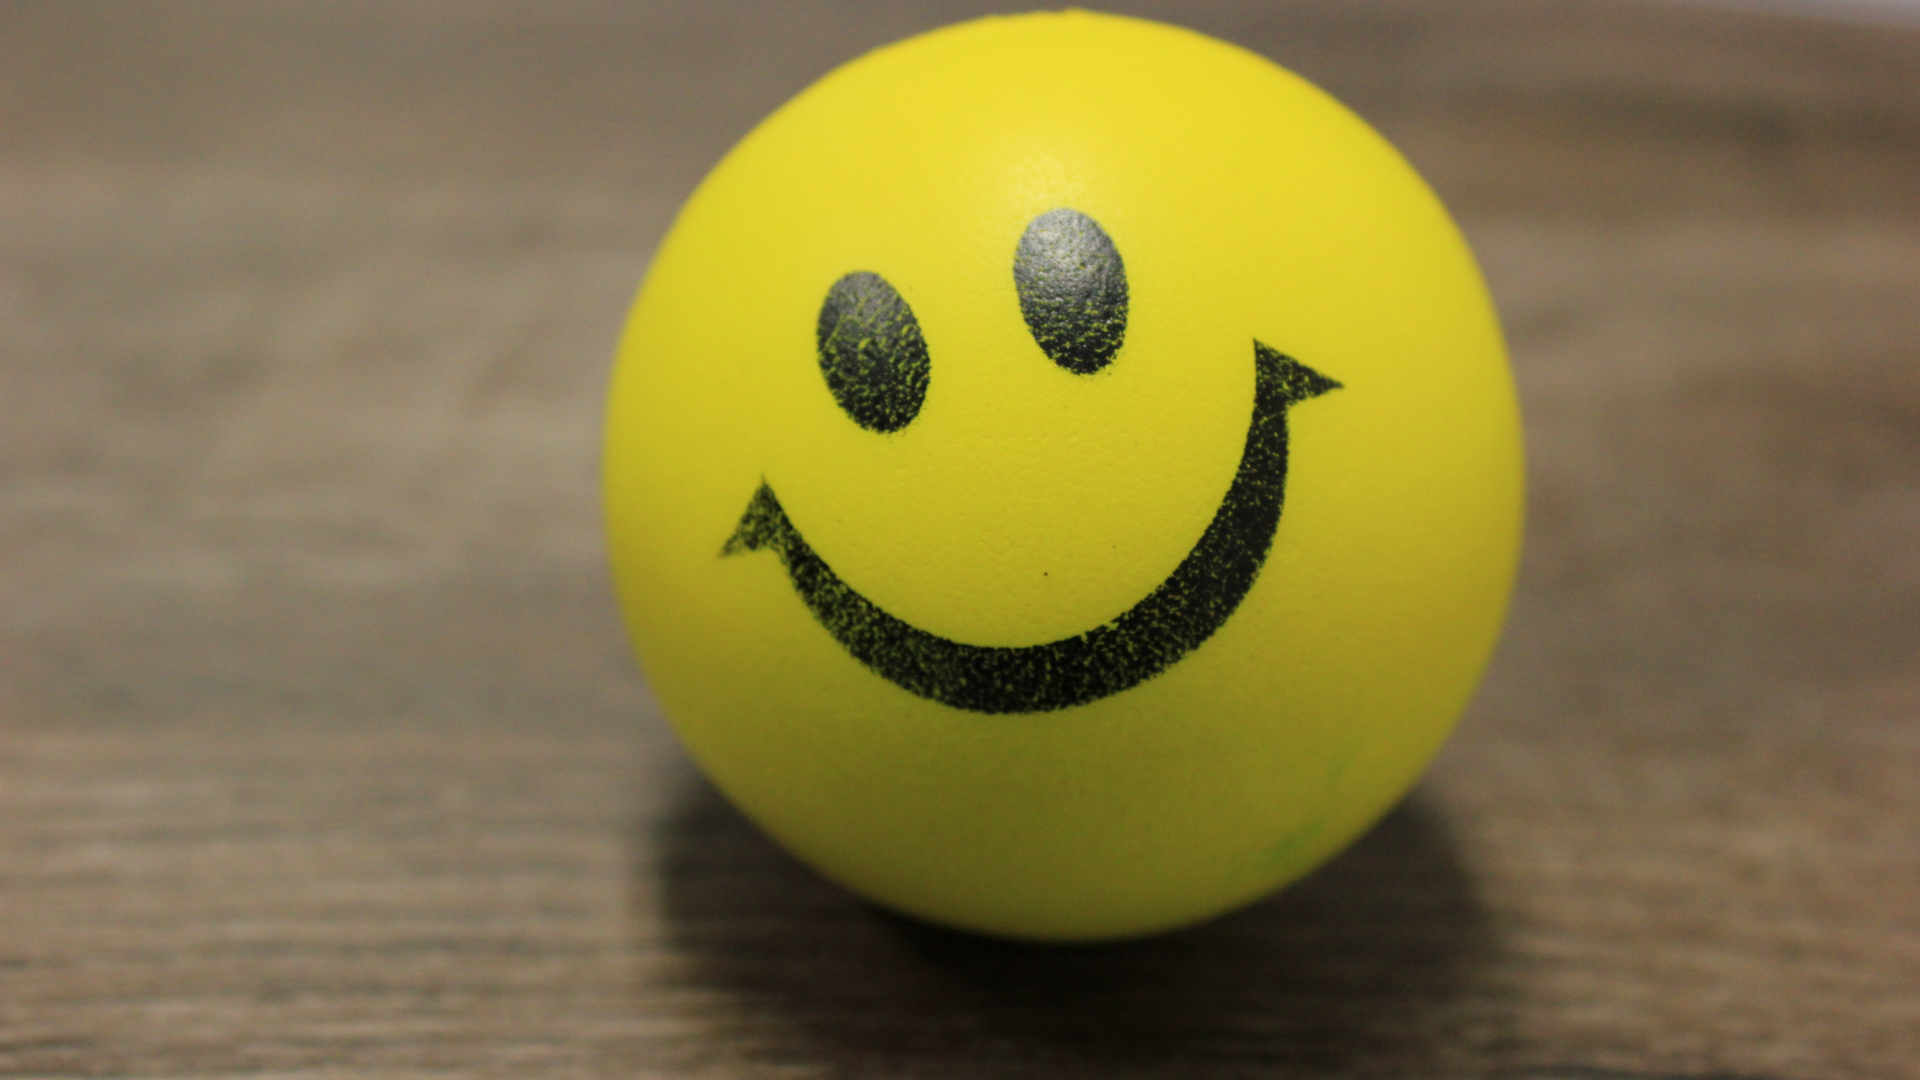 smiley-ball-on-a-wooden-surface